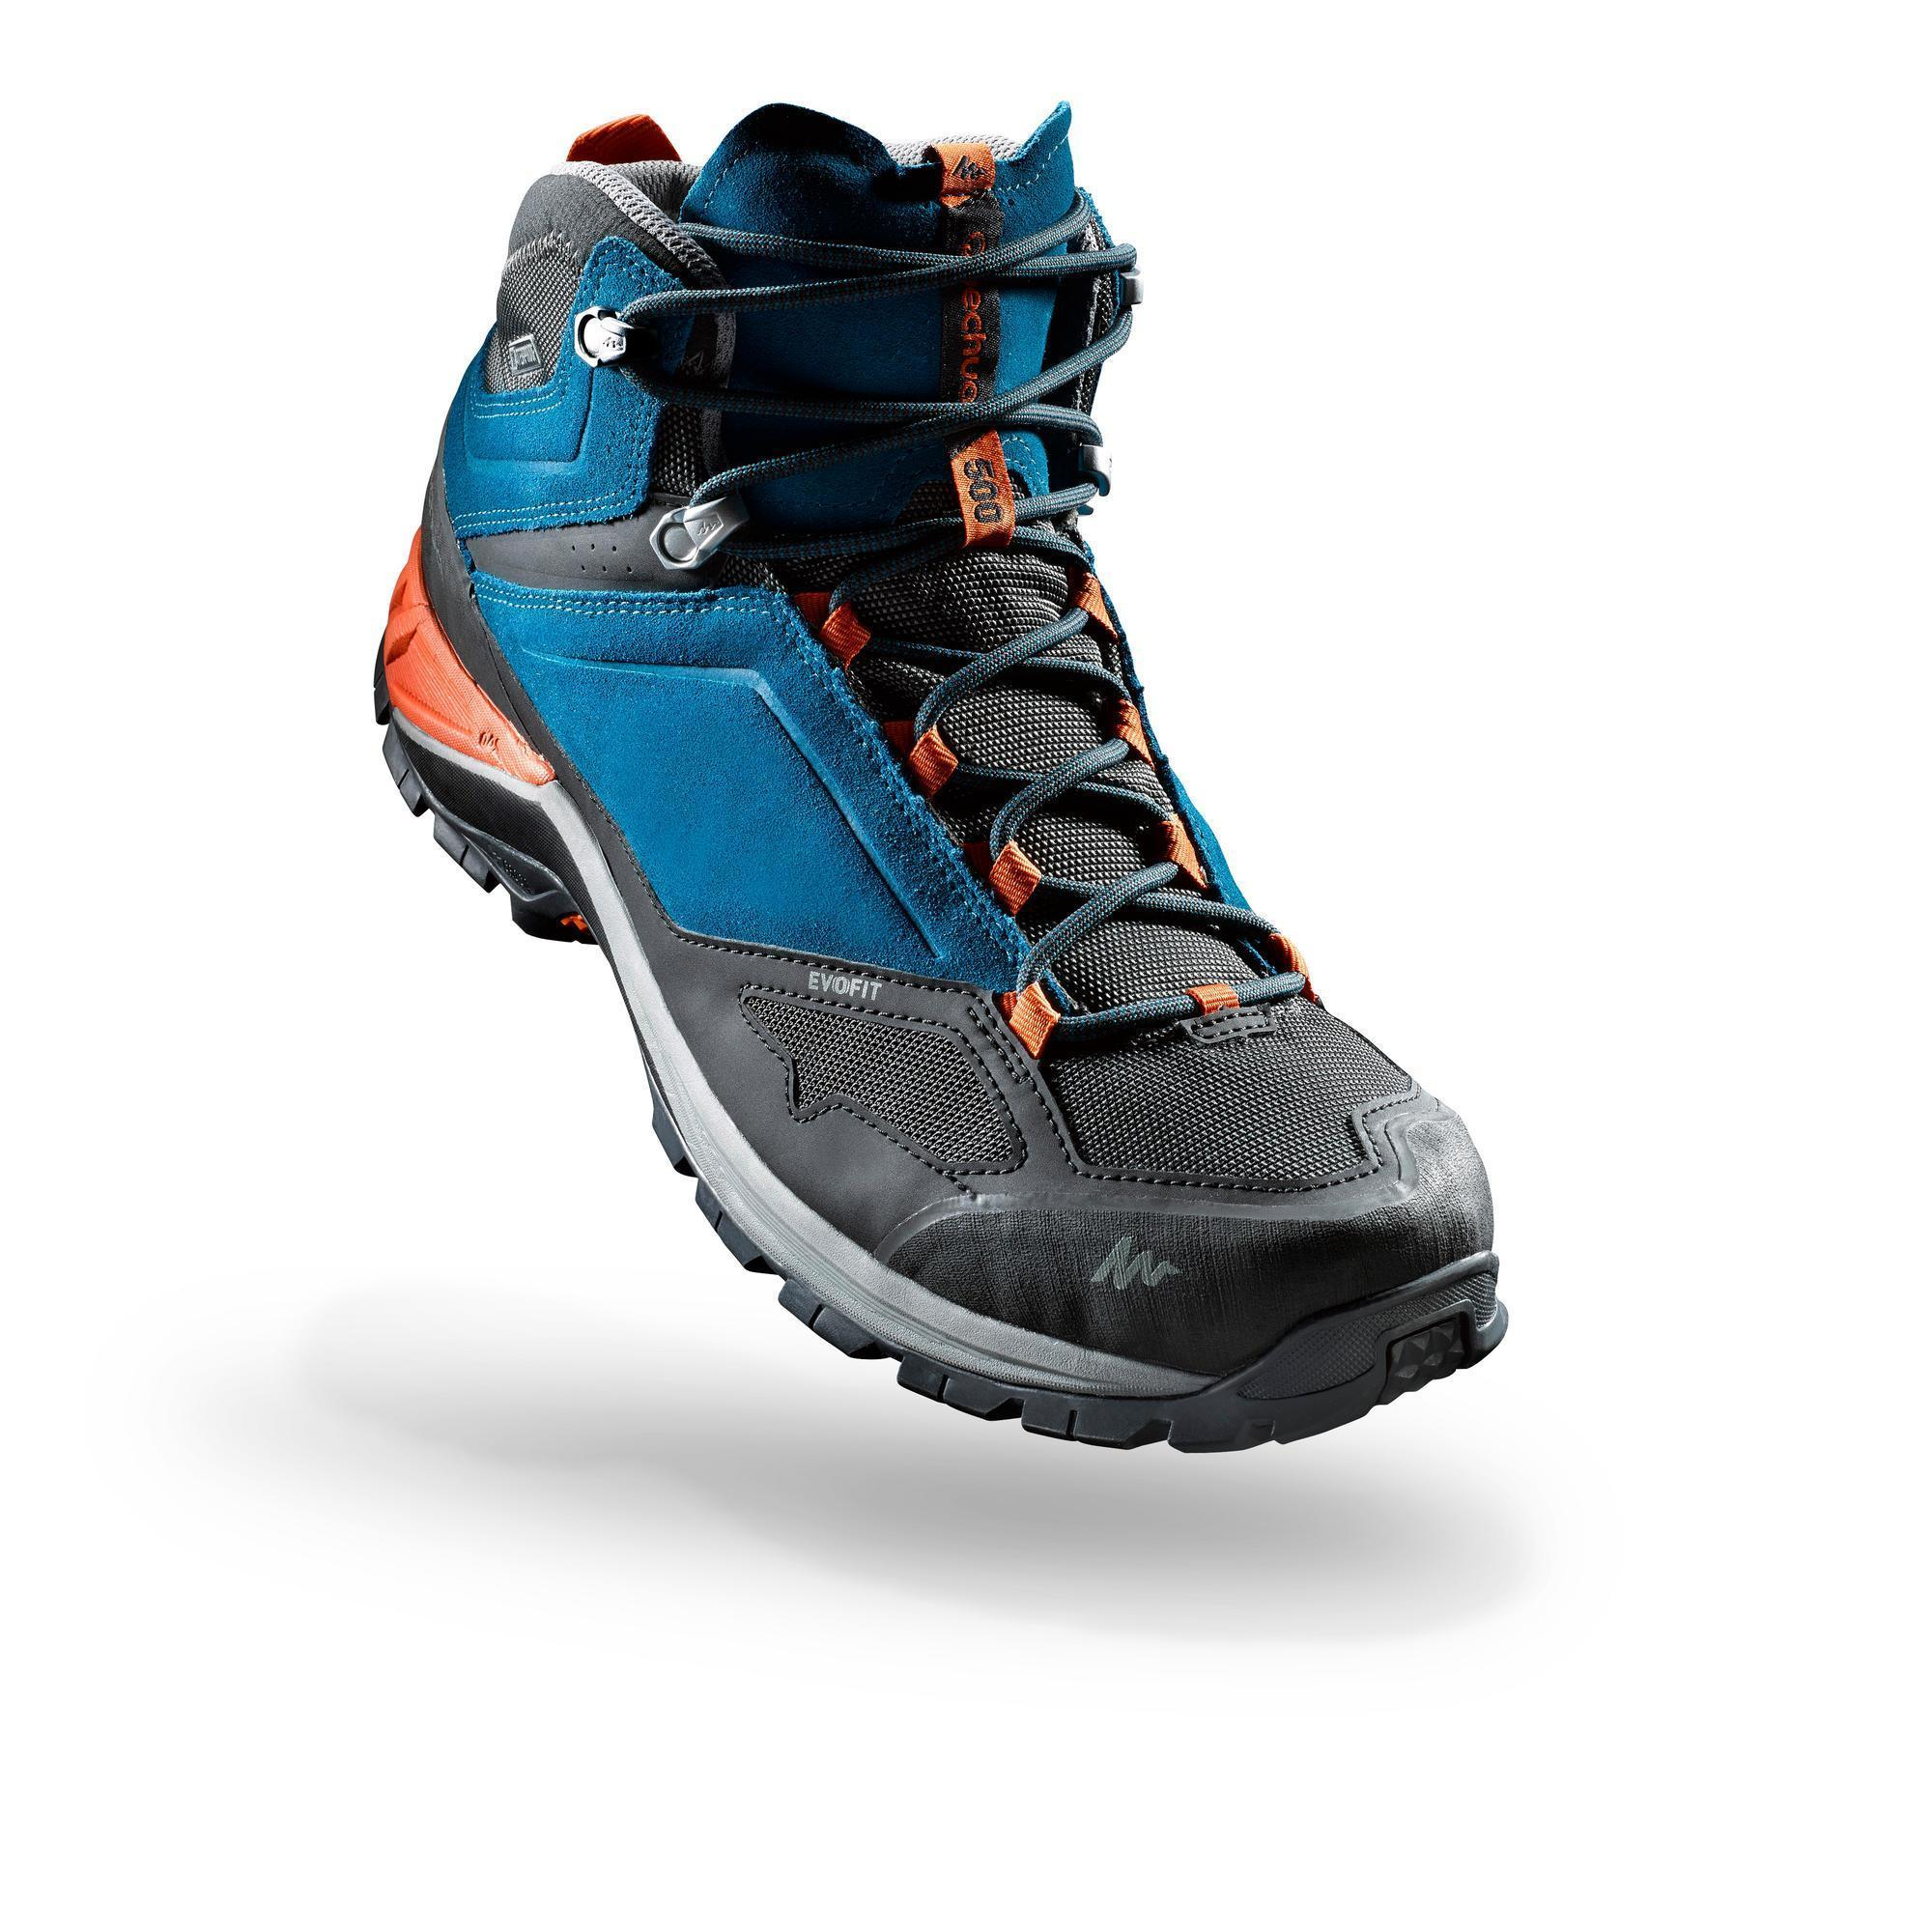 Mh500 Men S Mid Waterproof Mountain Hiking Boots Blue